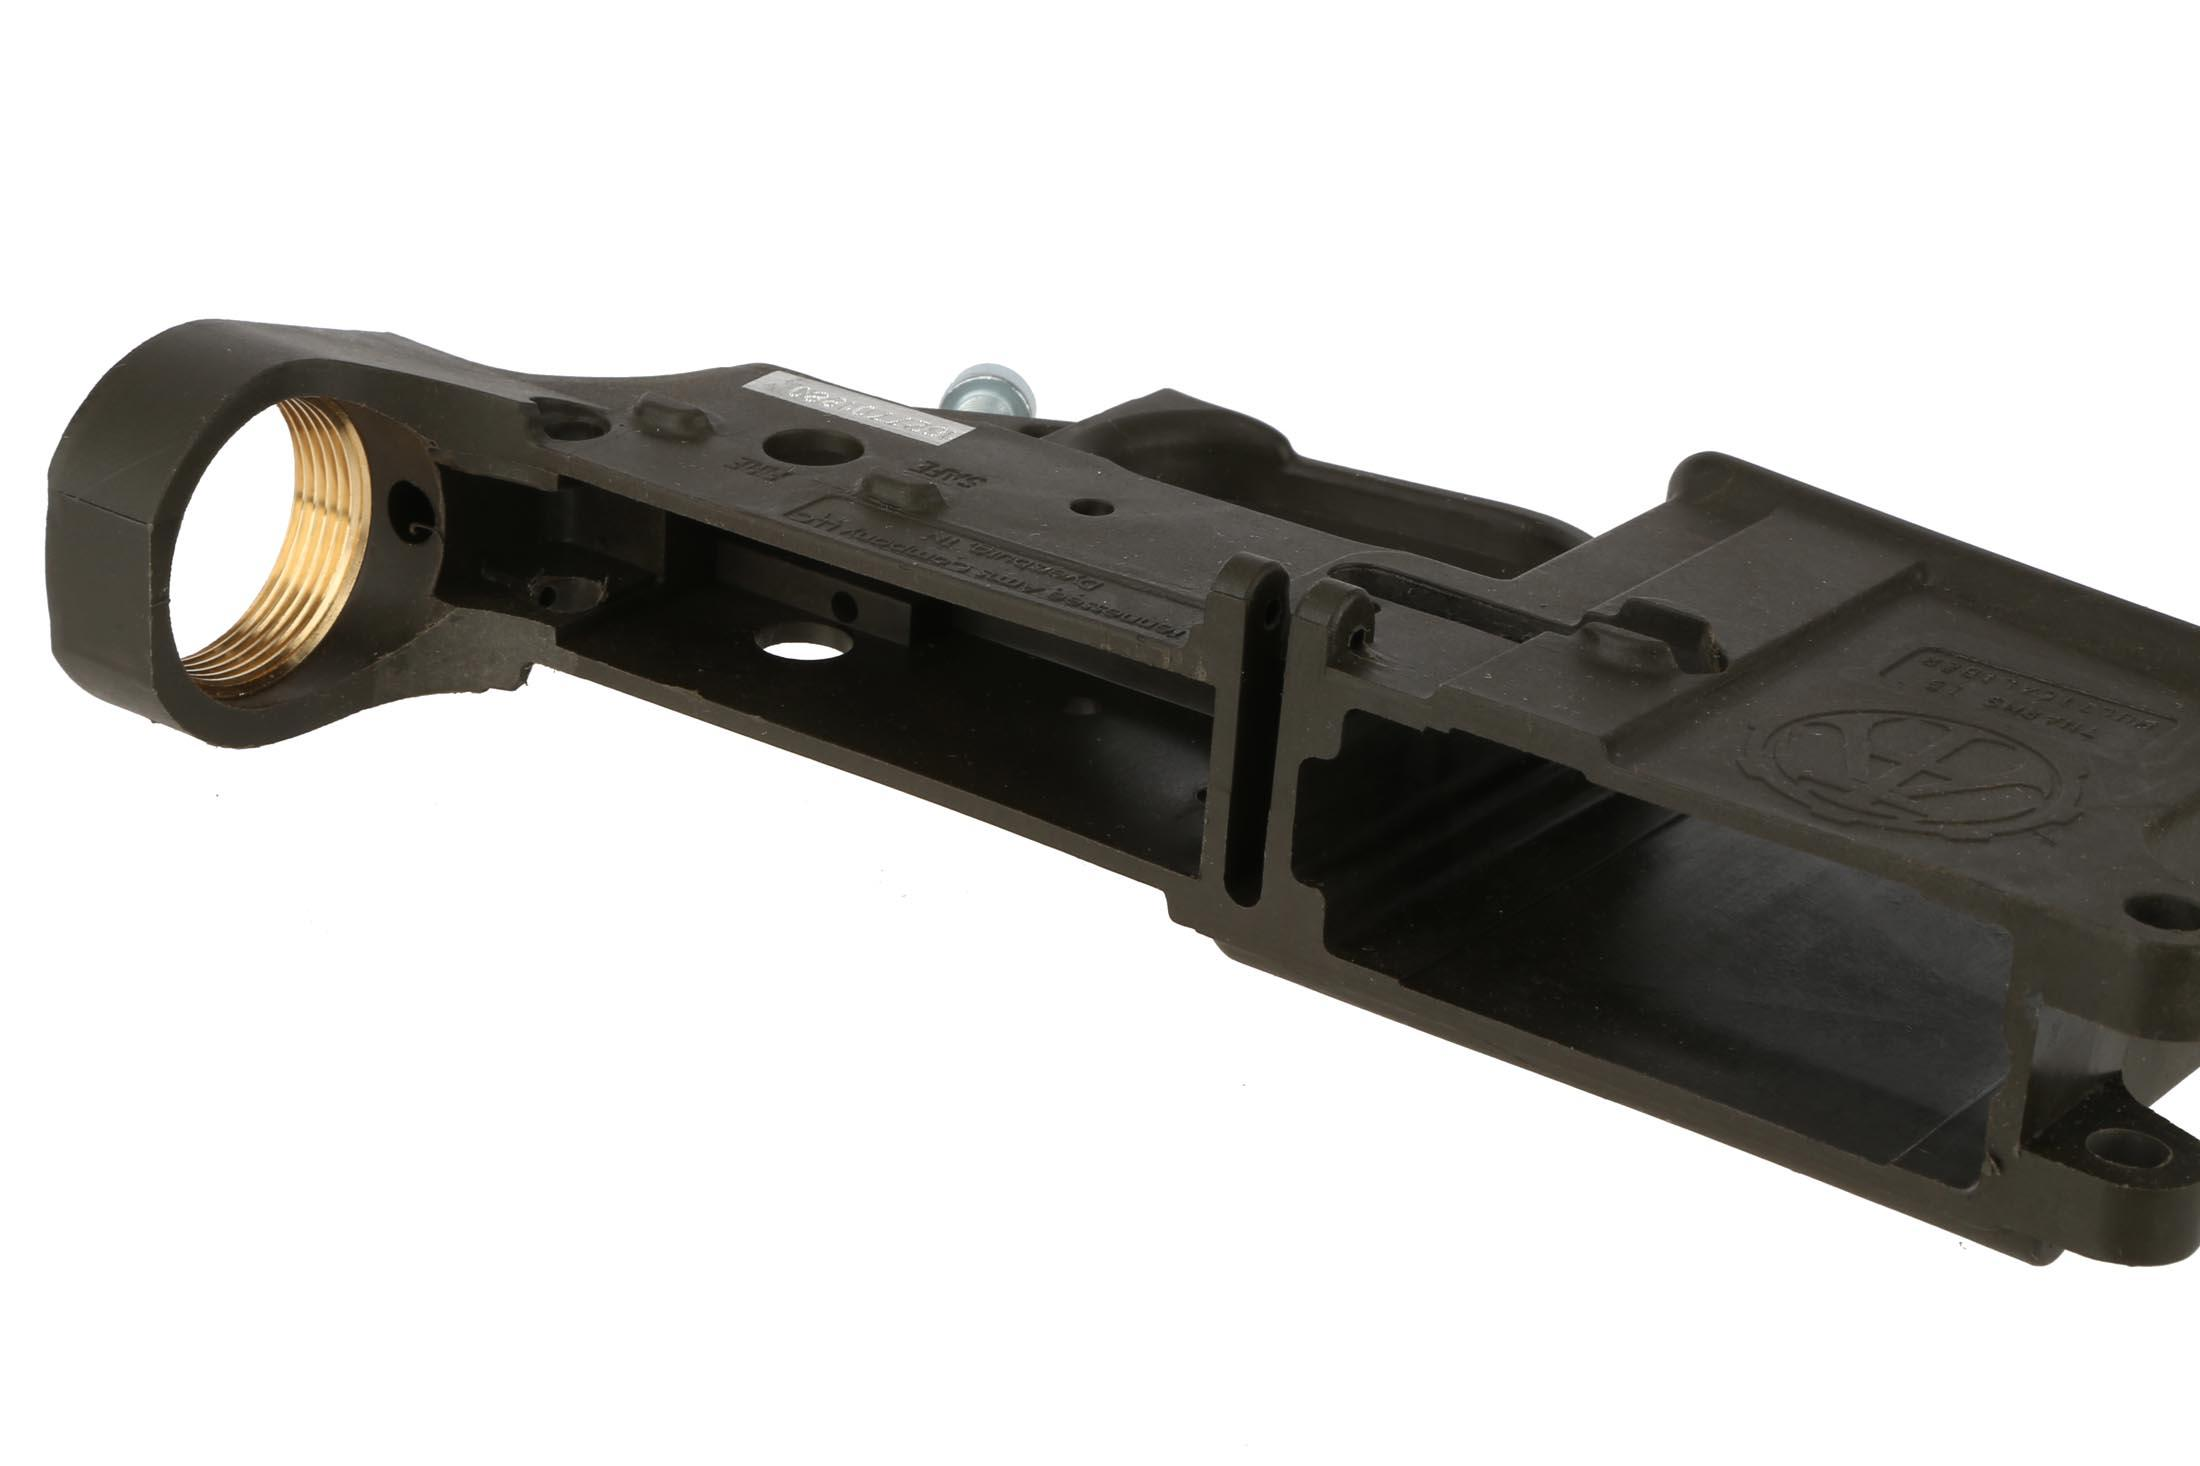 The Od Green Tn Arms Company Polymer Stripped Ar15 Lower Receiver Is Perfect For Building A